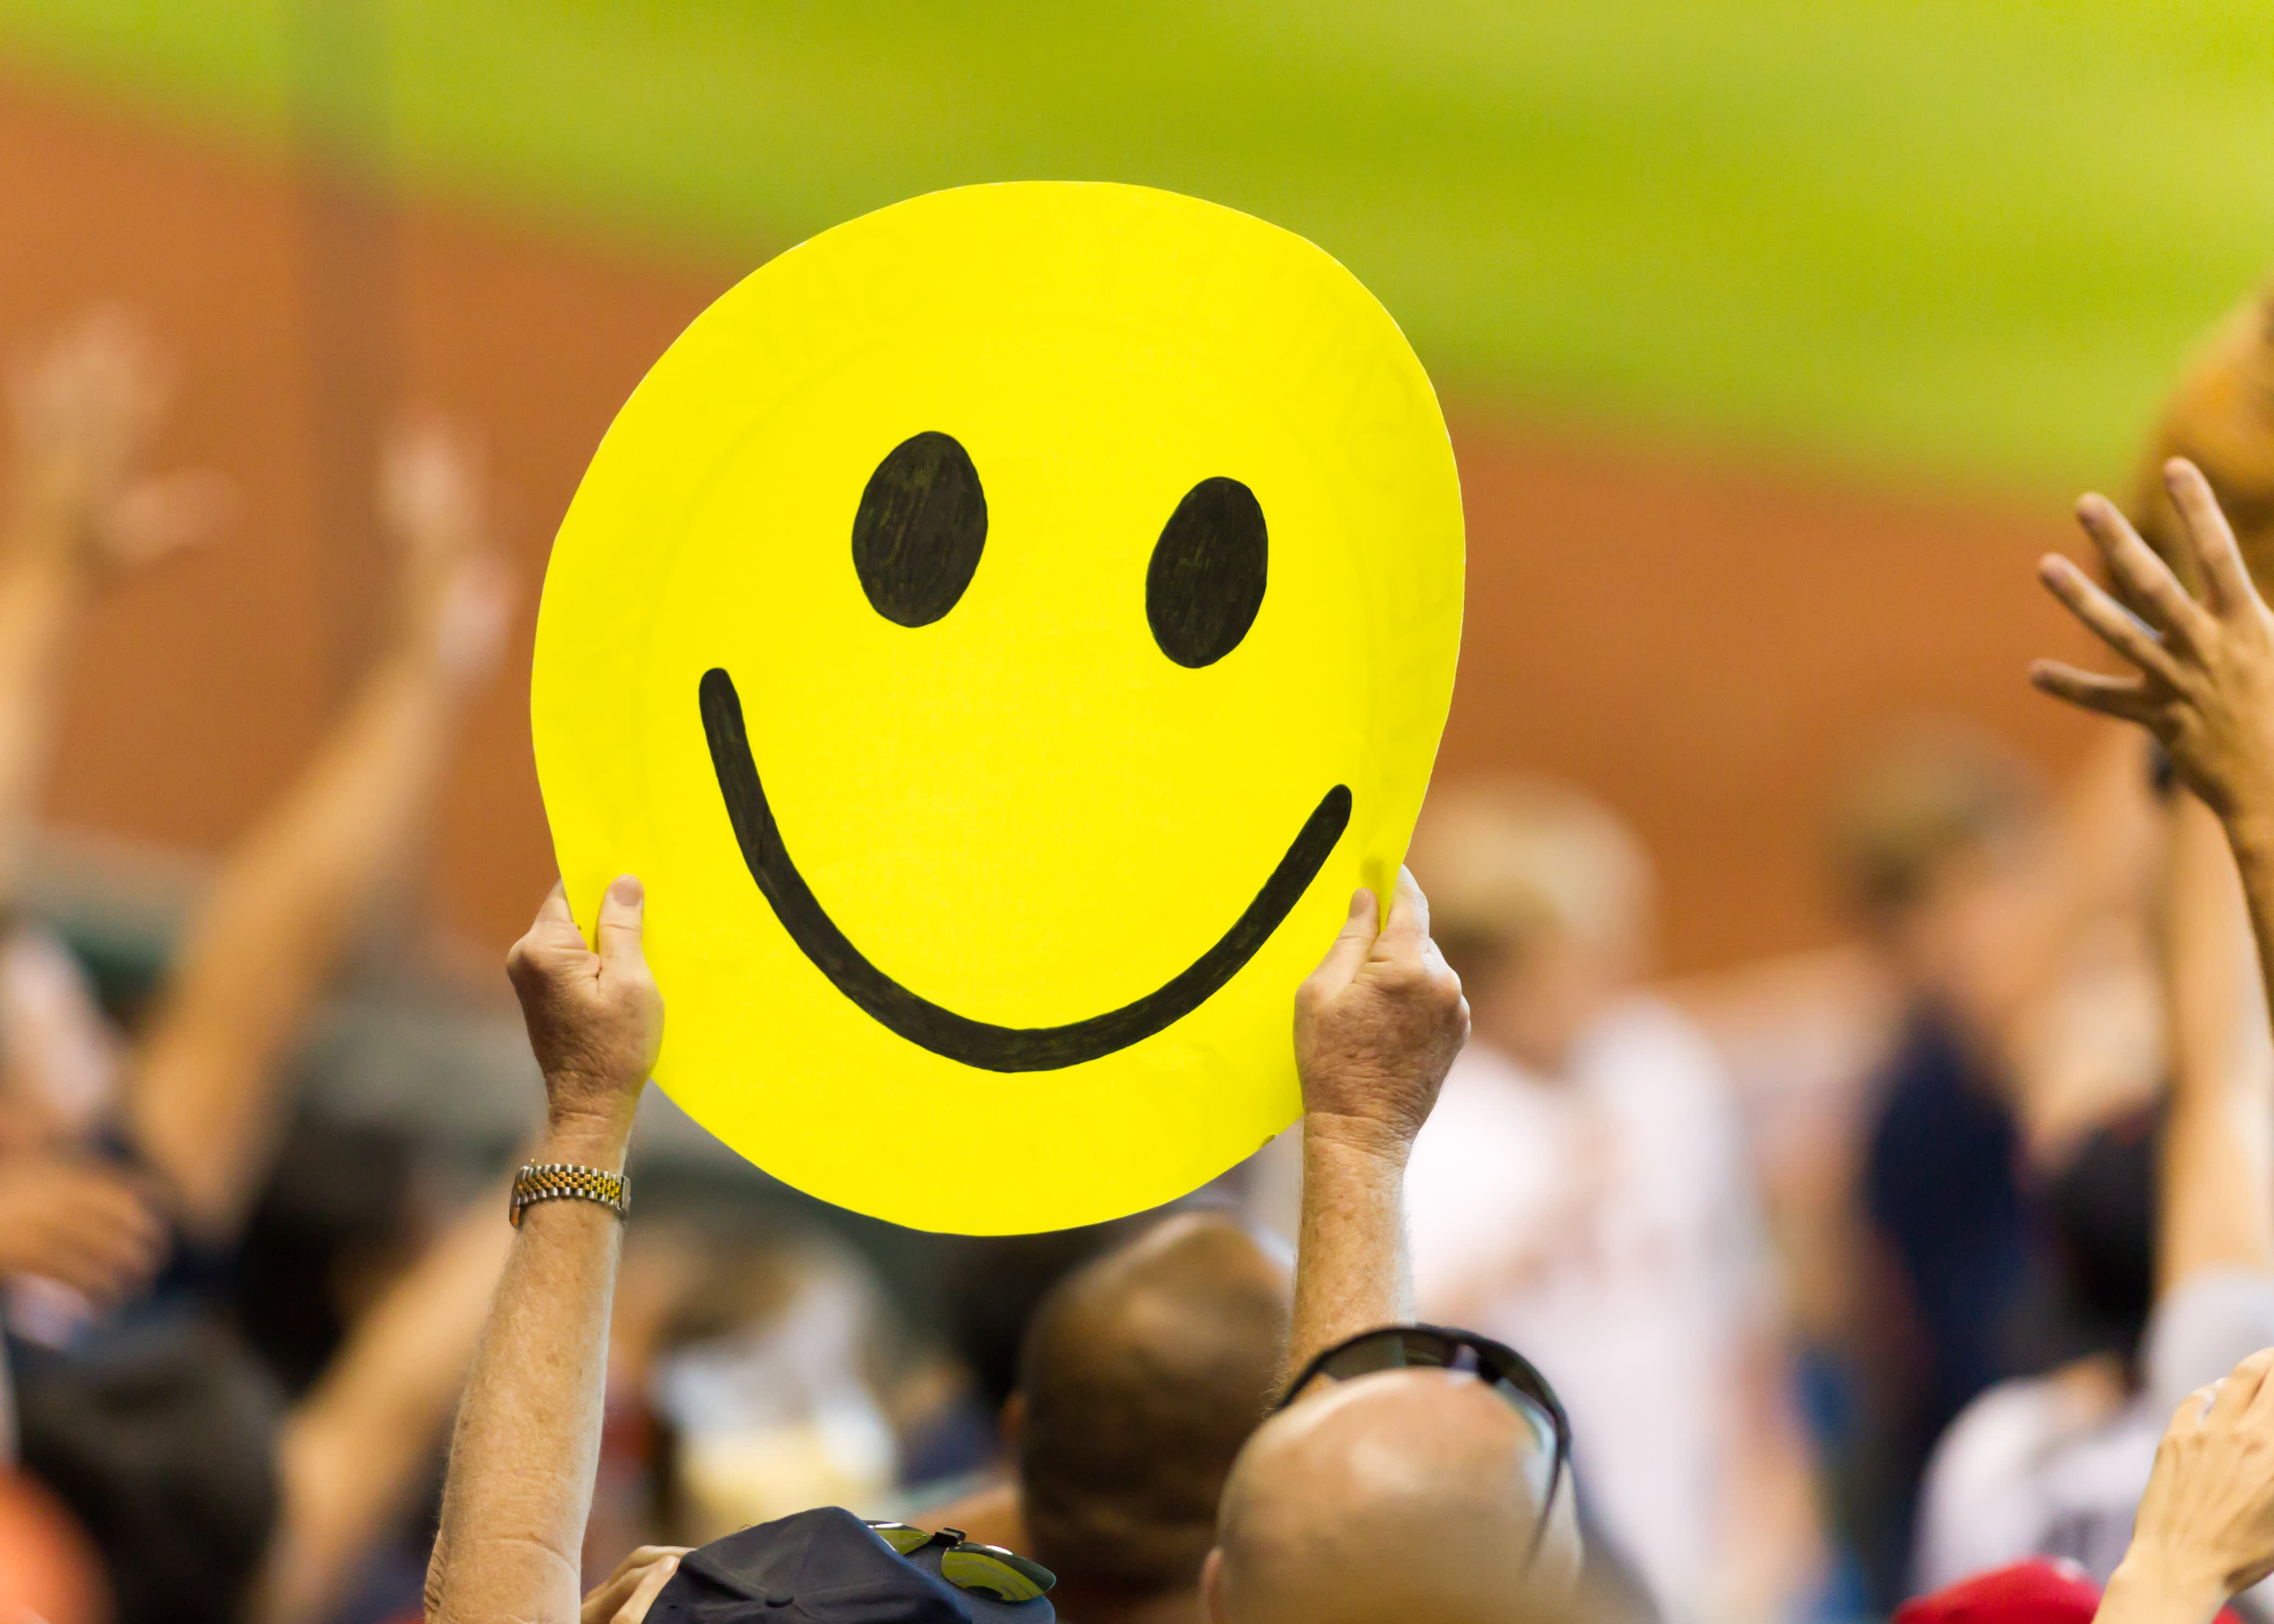 The Man Behind The Smiley Face Symbol Was Paid 45 For His Design